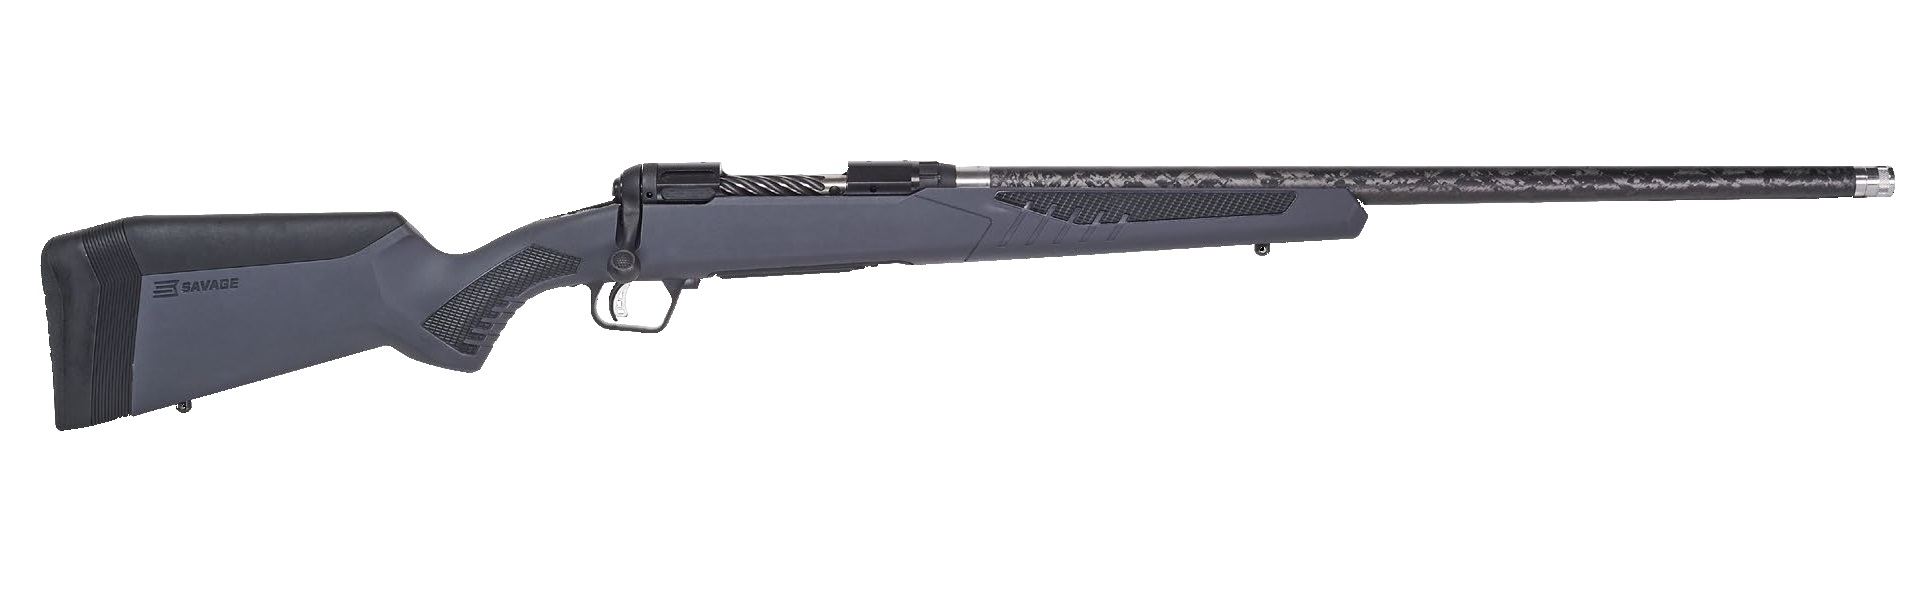 Savage Arms 110 Ultralite 6.5 PRC